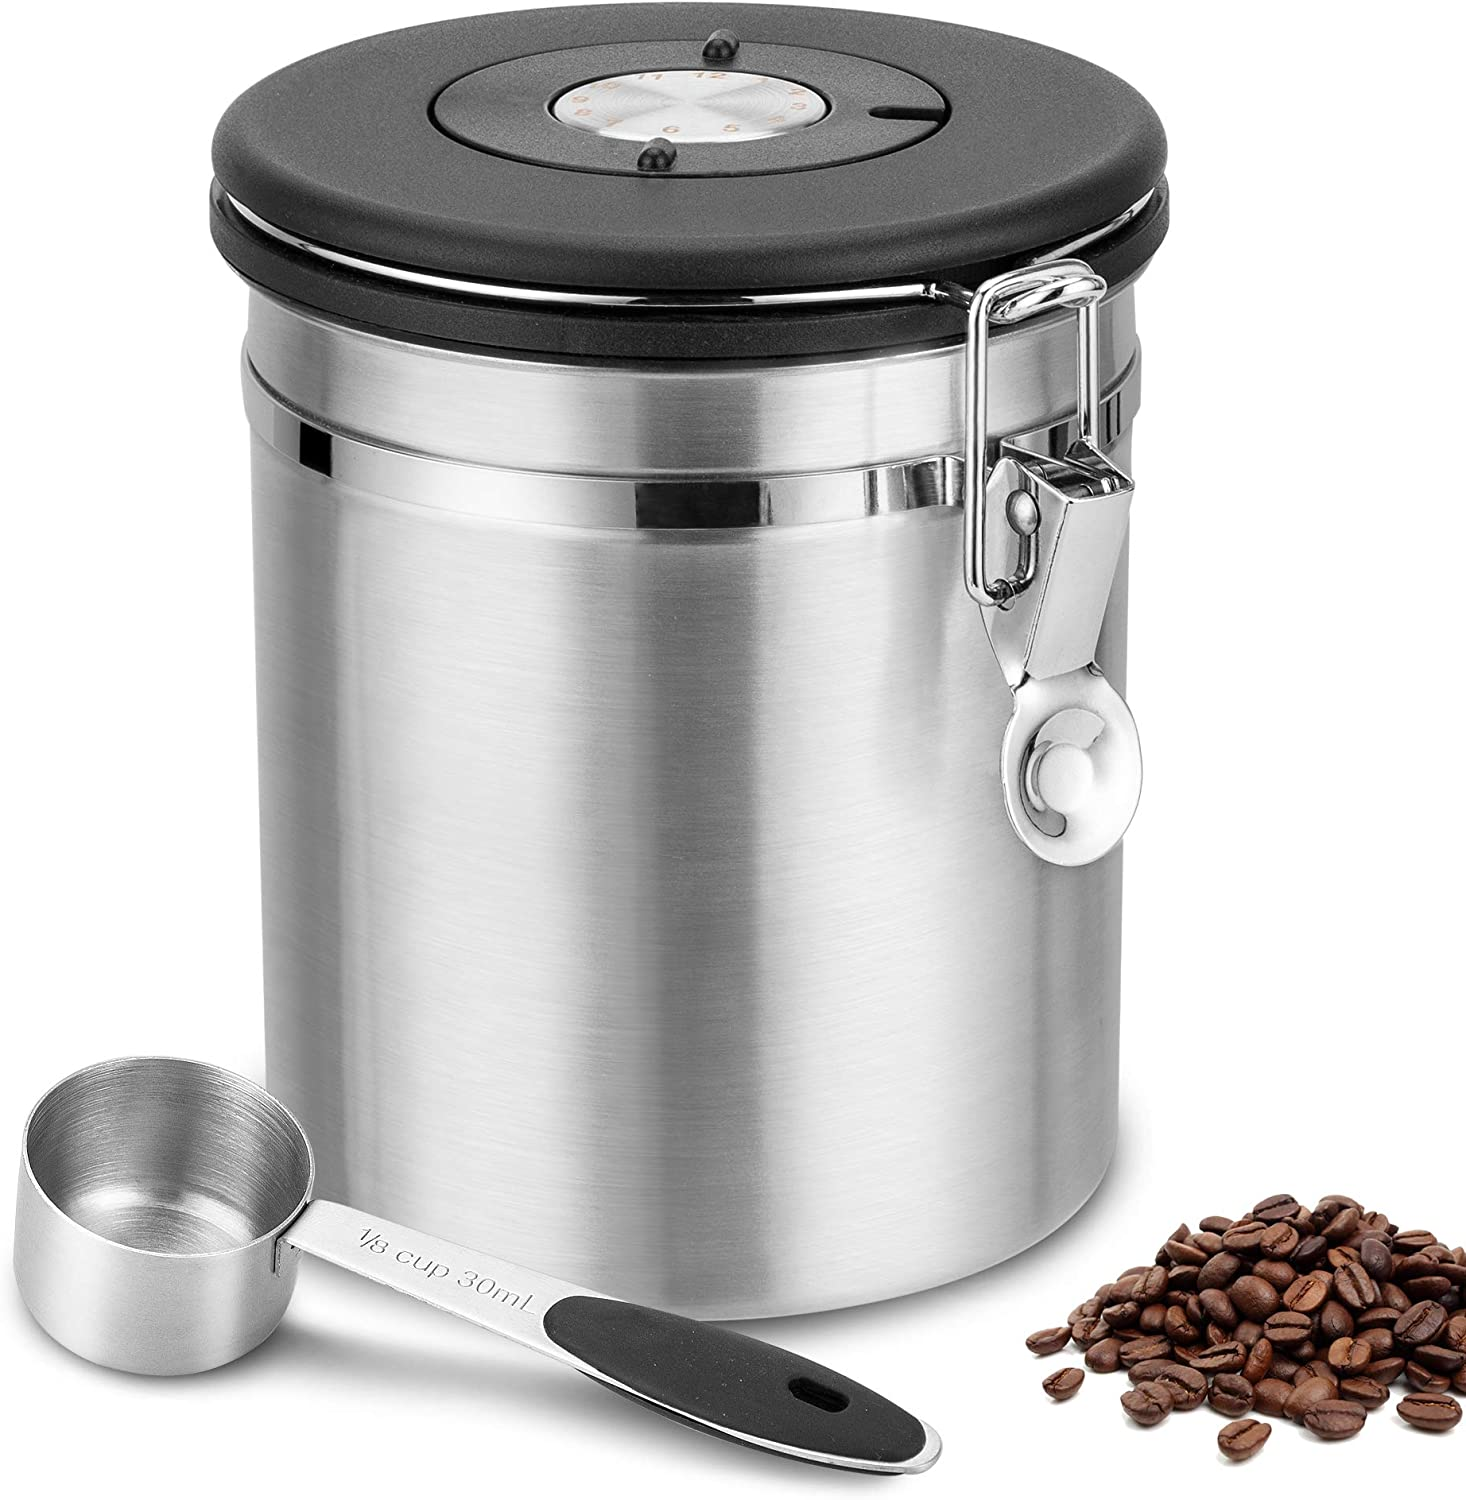 Coffee Canister, ENLOY Airtight Stainless Steel Coffee Storage Container with Lid, Container-One Way Co2 Valve with Date Tracker and Scoop Coffee Jar for Beans, Grounds, Tea, Flour, Sugar, 22oz